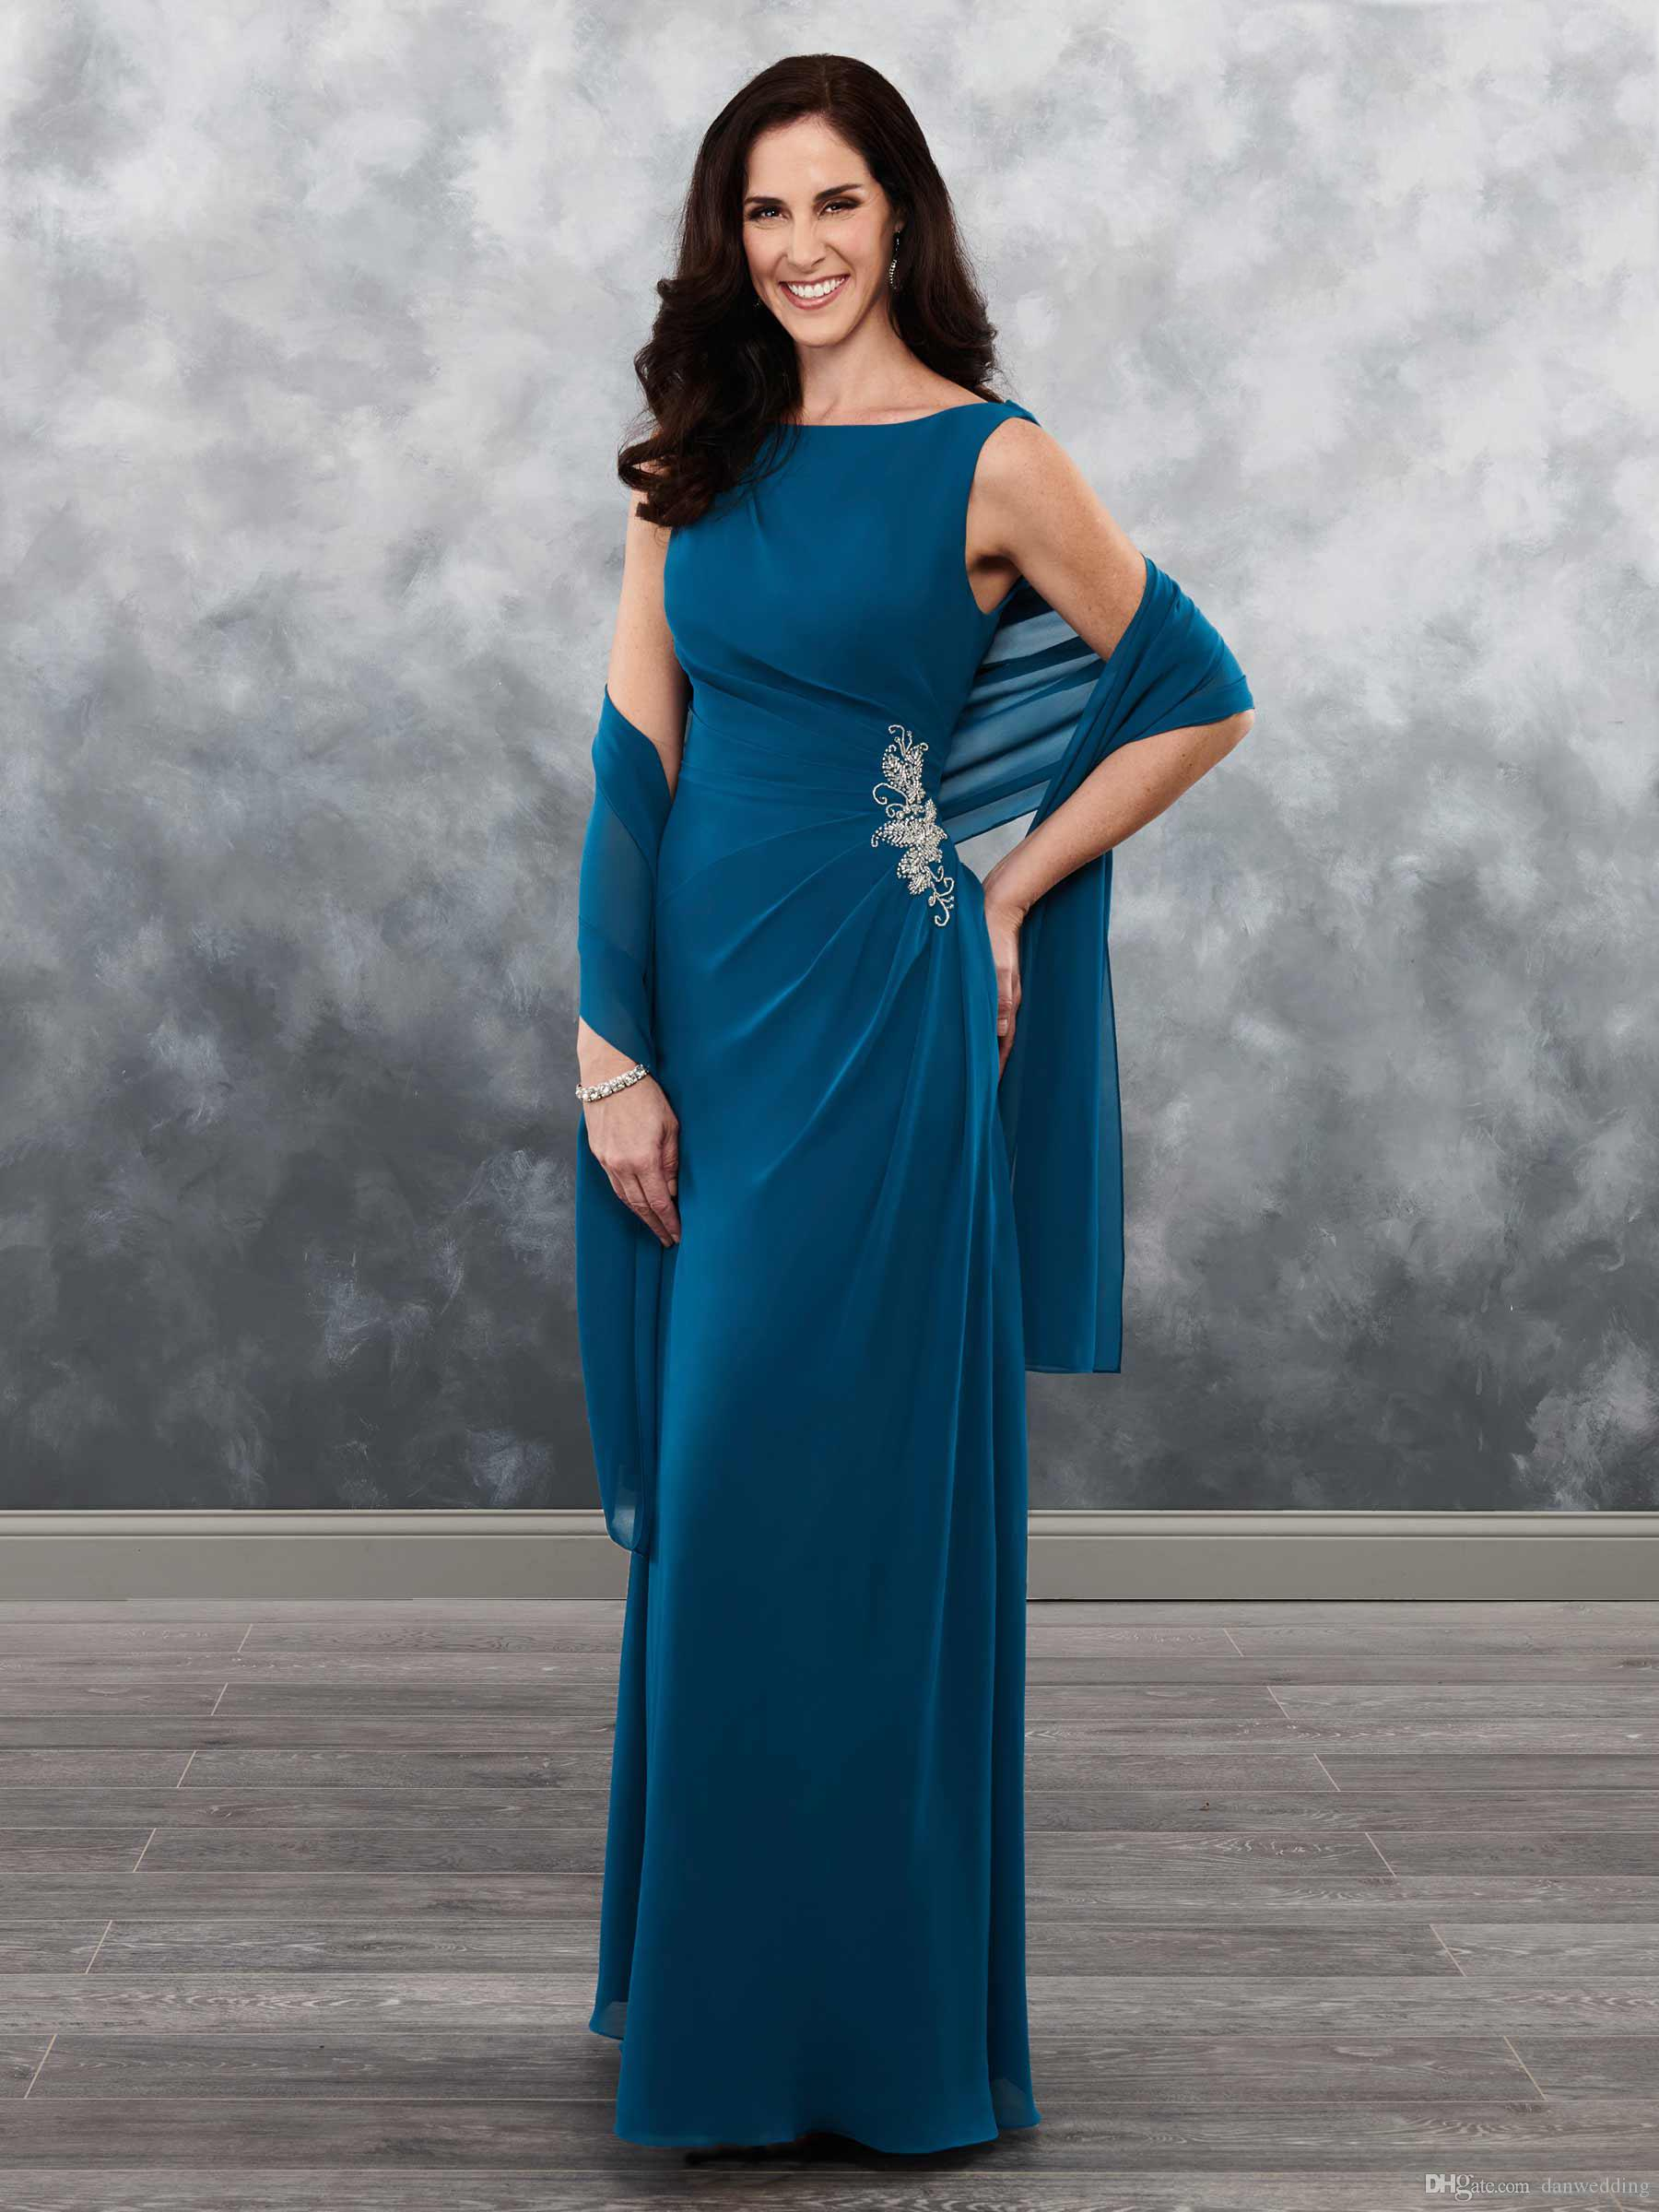 Free Shawl Elegant Teal Blue Chiffon Beads Mother's Dresses Mother's Special Occasion Weddings Party Dresses Custom Size 2-18 KF101402